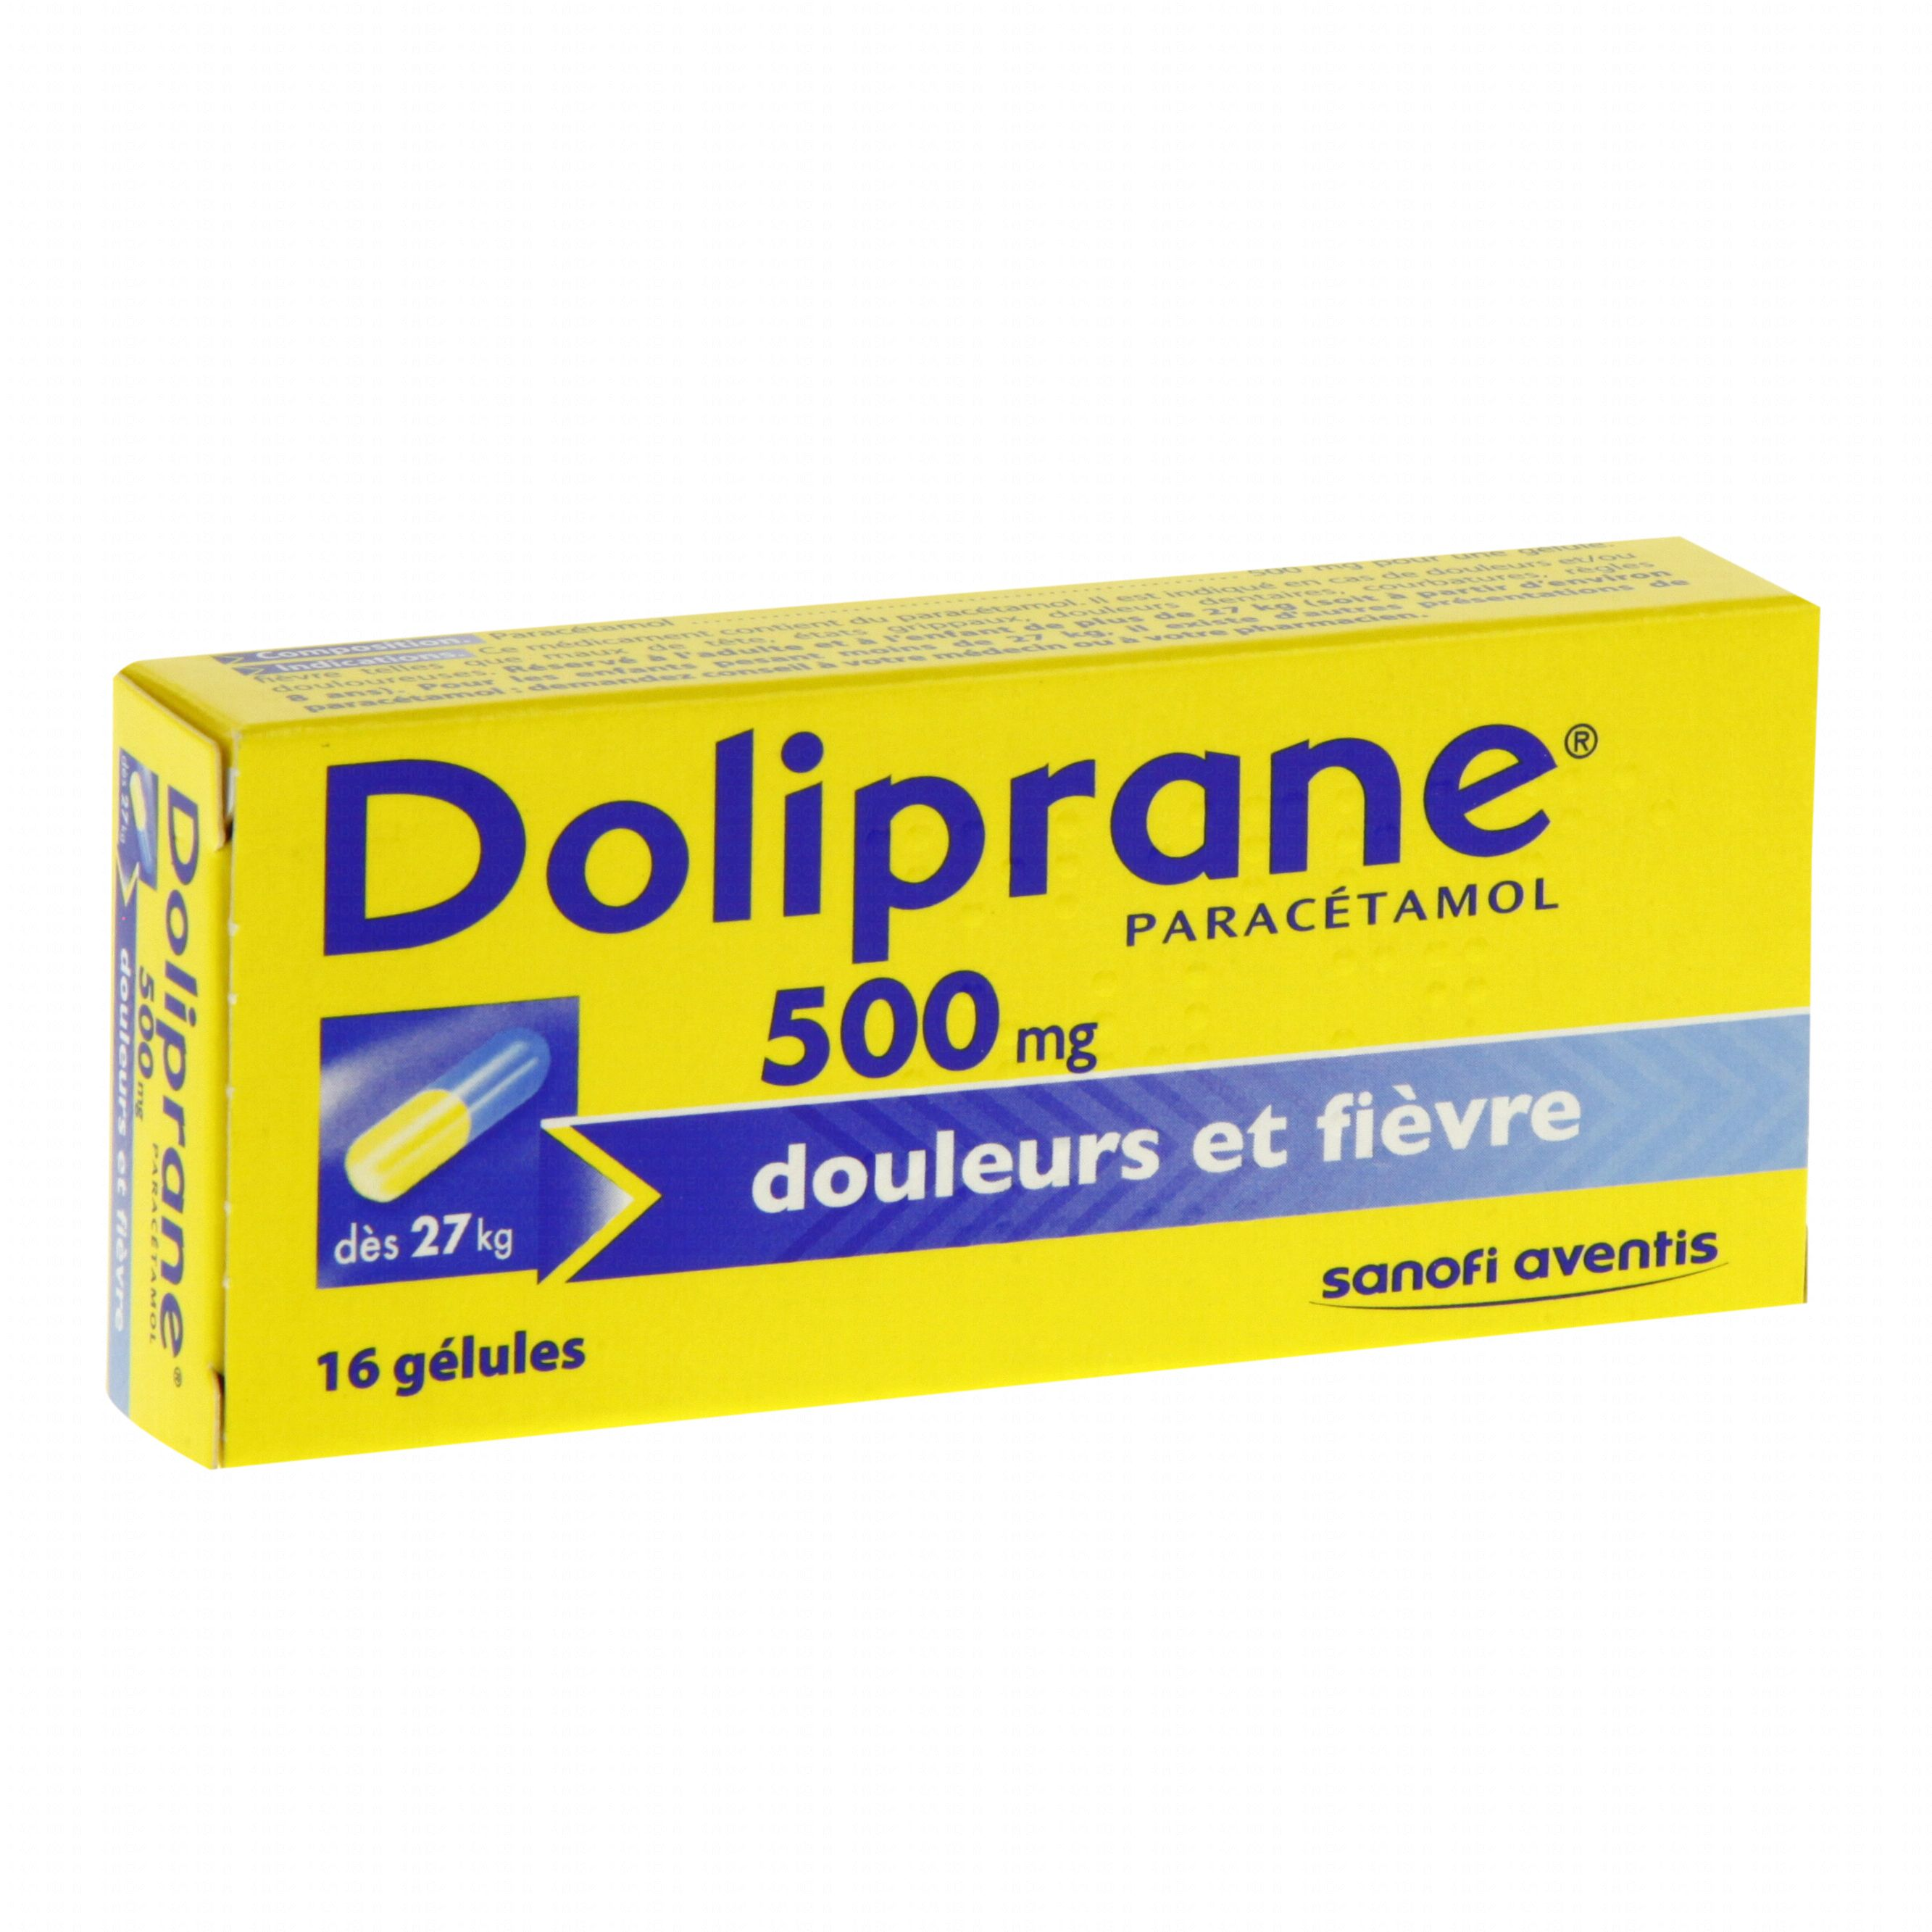 doliprane 500 mg bo te de 16 g lules sanofi aventis m dicament conseil pharmacie en ligne. Black Bedroom Furniture Sets. Home Design Ideas